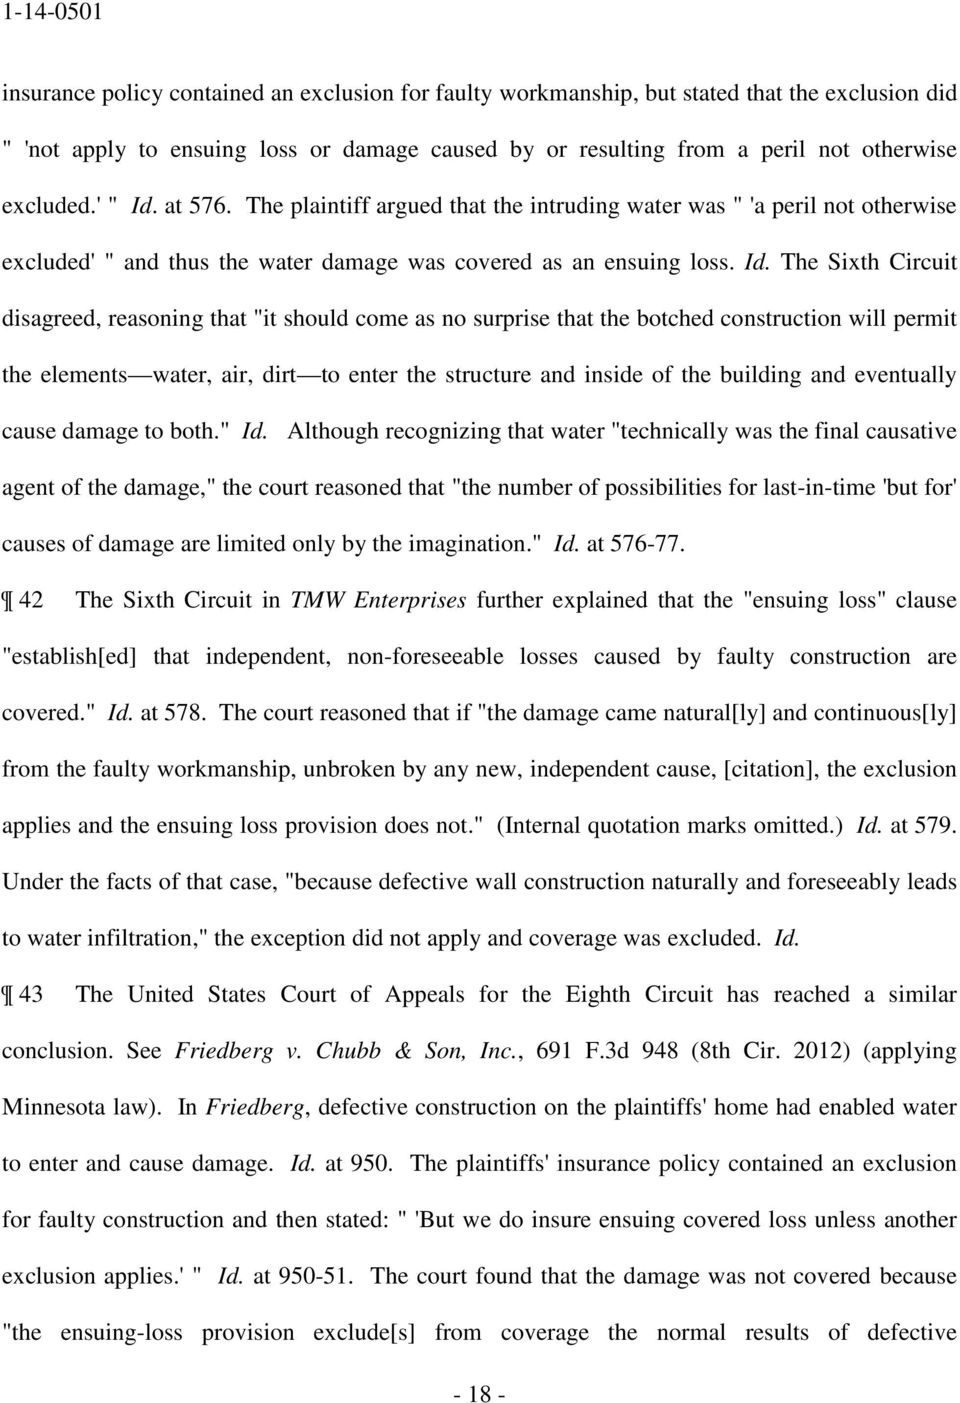 "at 576. The plaintiff argued that the intruding water was "" 'a peril not otherwise excluded' "" and thus the water damage was covered as an ensuing loss. Id."